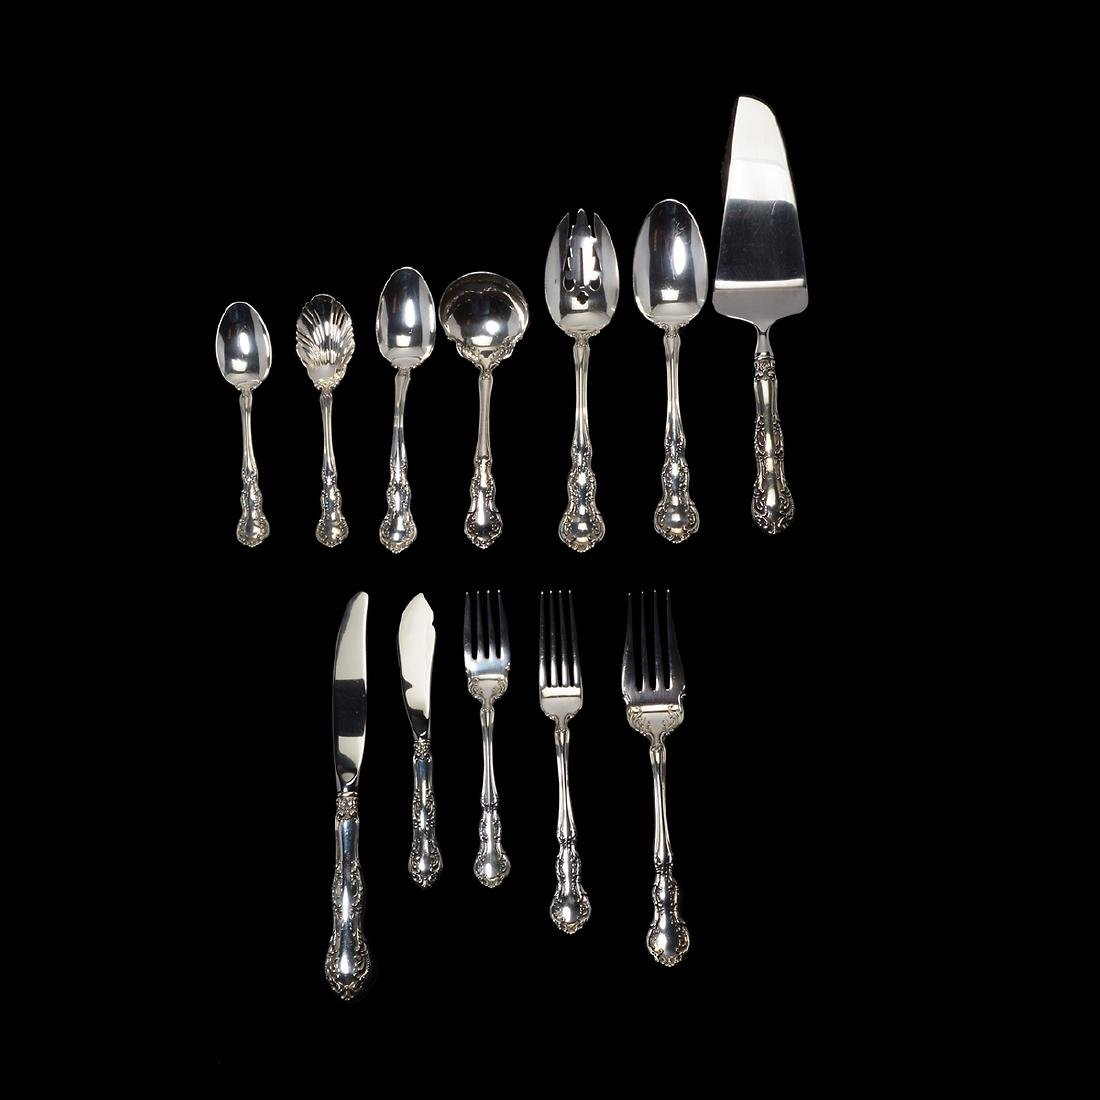 Wallace Sterling Flatware Service in the Old Atlanta